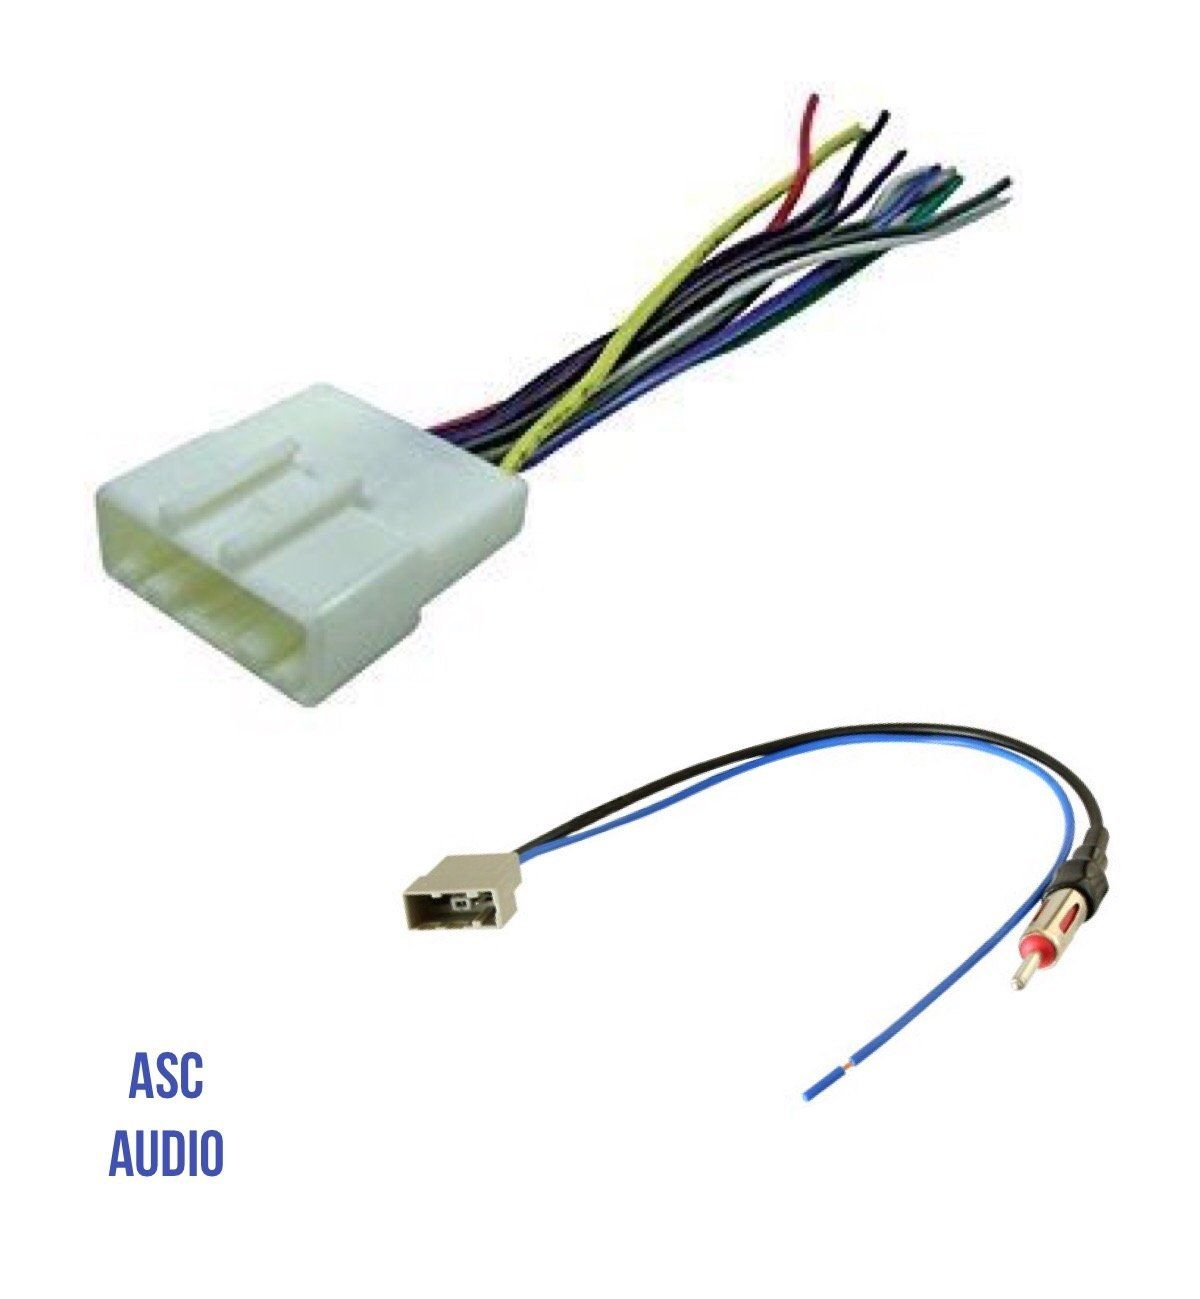 hight resolution of asc audio car stereo radio wire harness and antenna adapter to aftermarket radio for some infiniti nissan subaru etc listed below